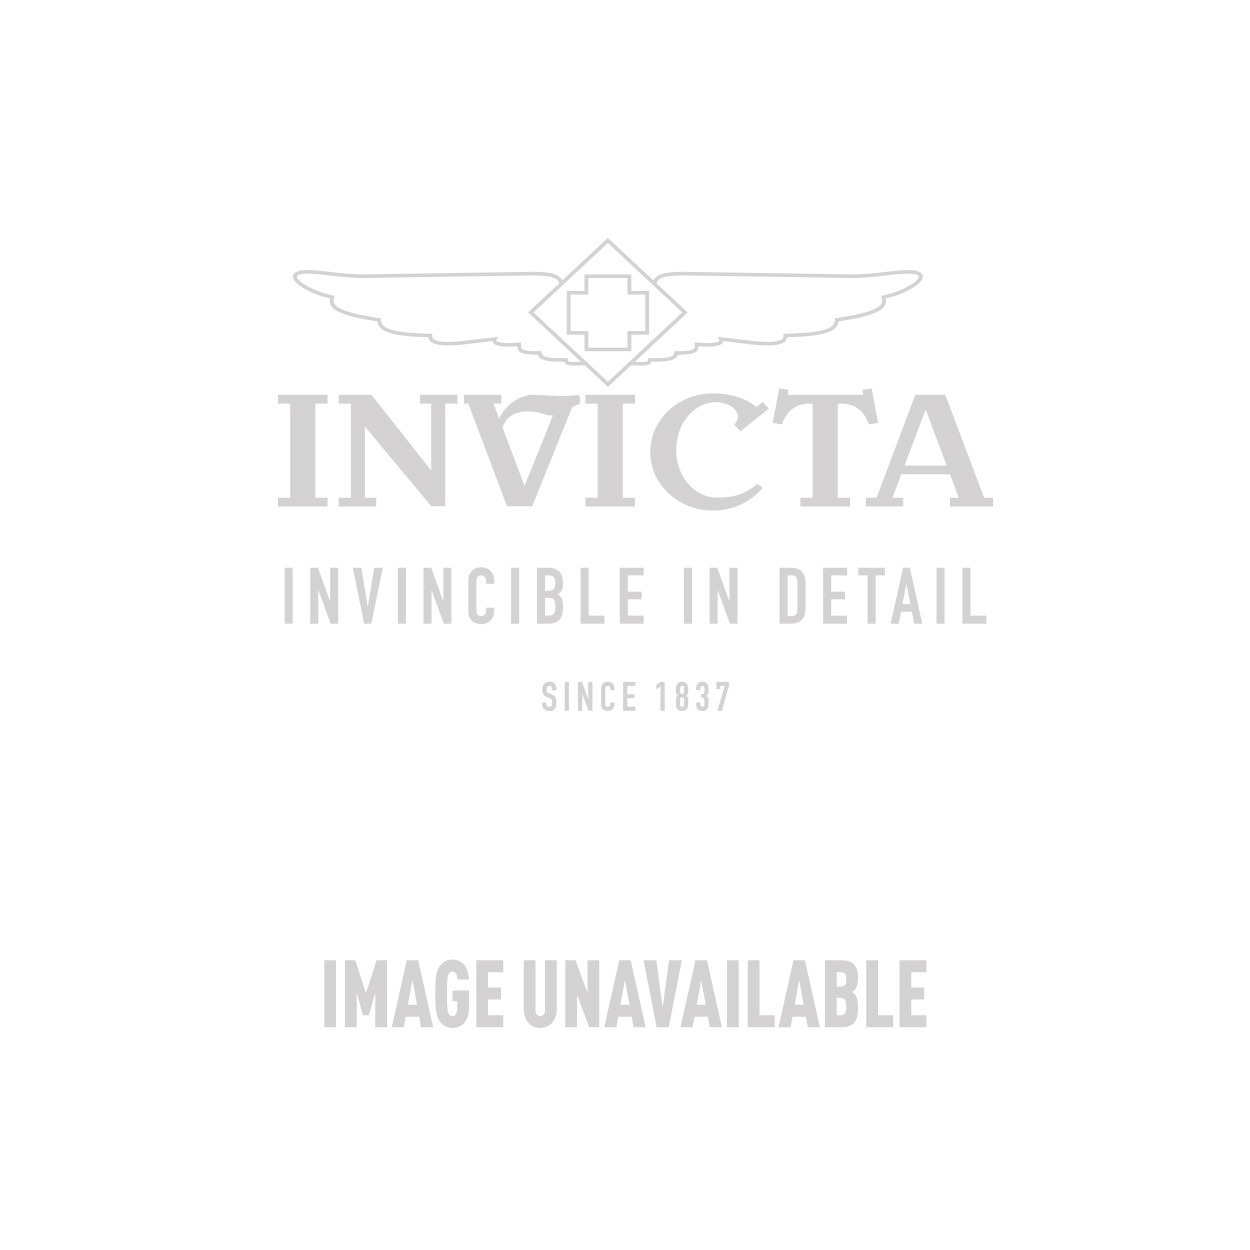 Invicta Vintage Swiss Movement Quartz Watch - Rose Gold case with Black tone Leather band - Model 6752